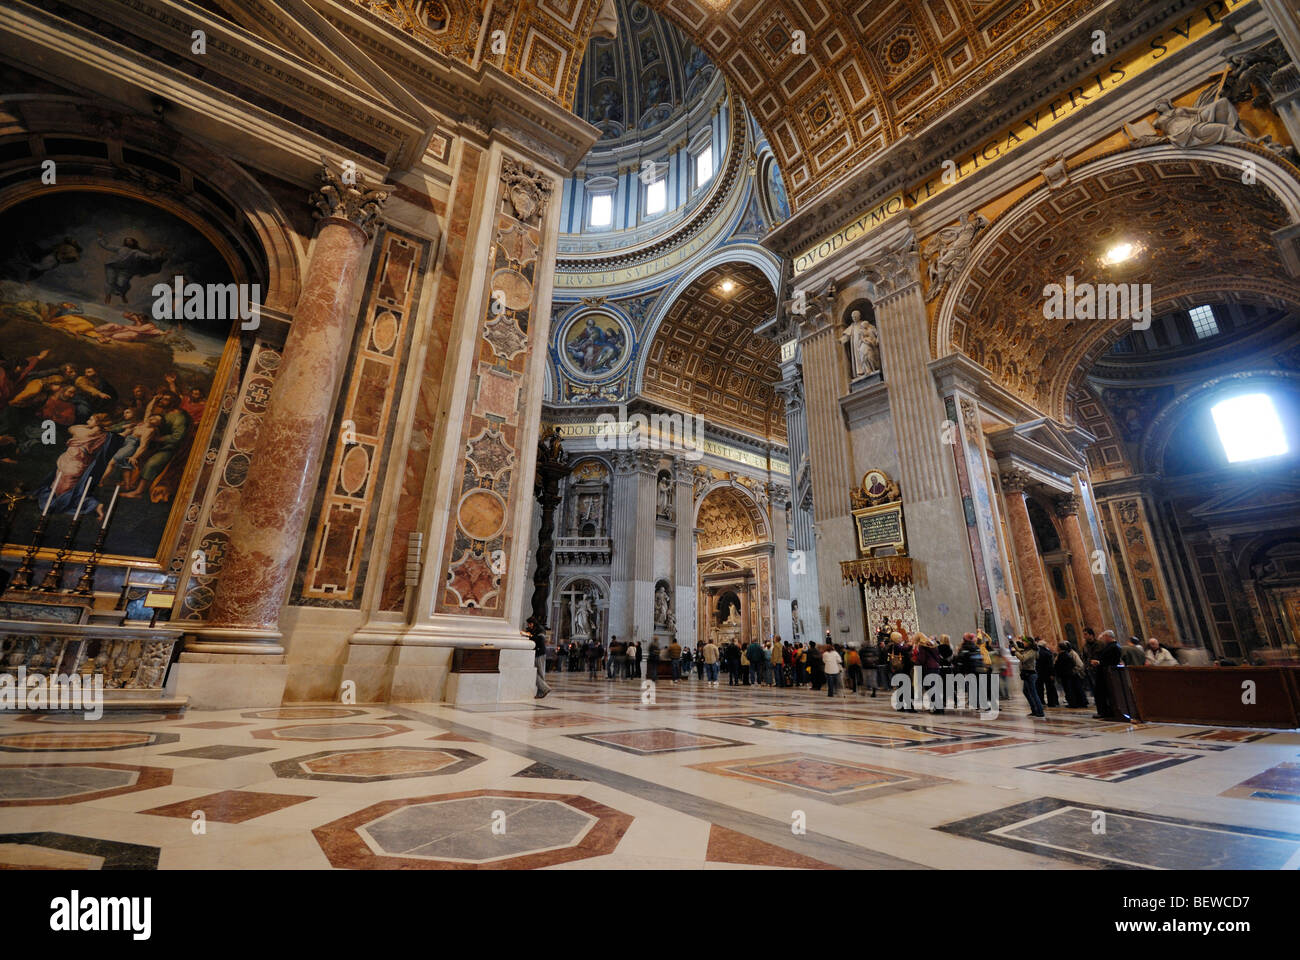 Interior of St. Peters Basilica, Rome, Vatican City, wide-angle view Stock Photo